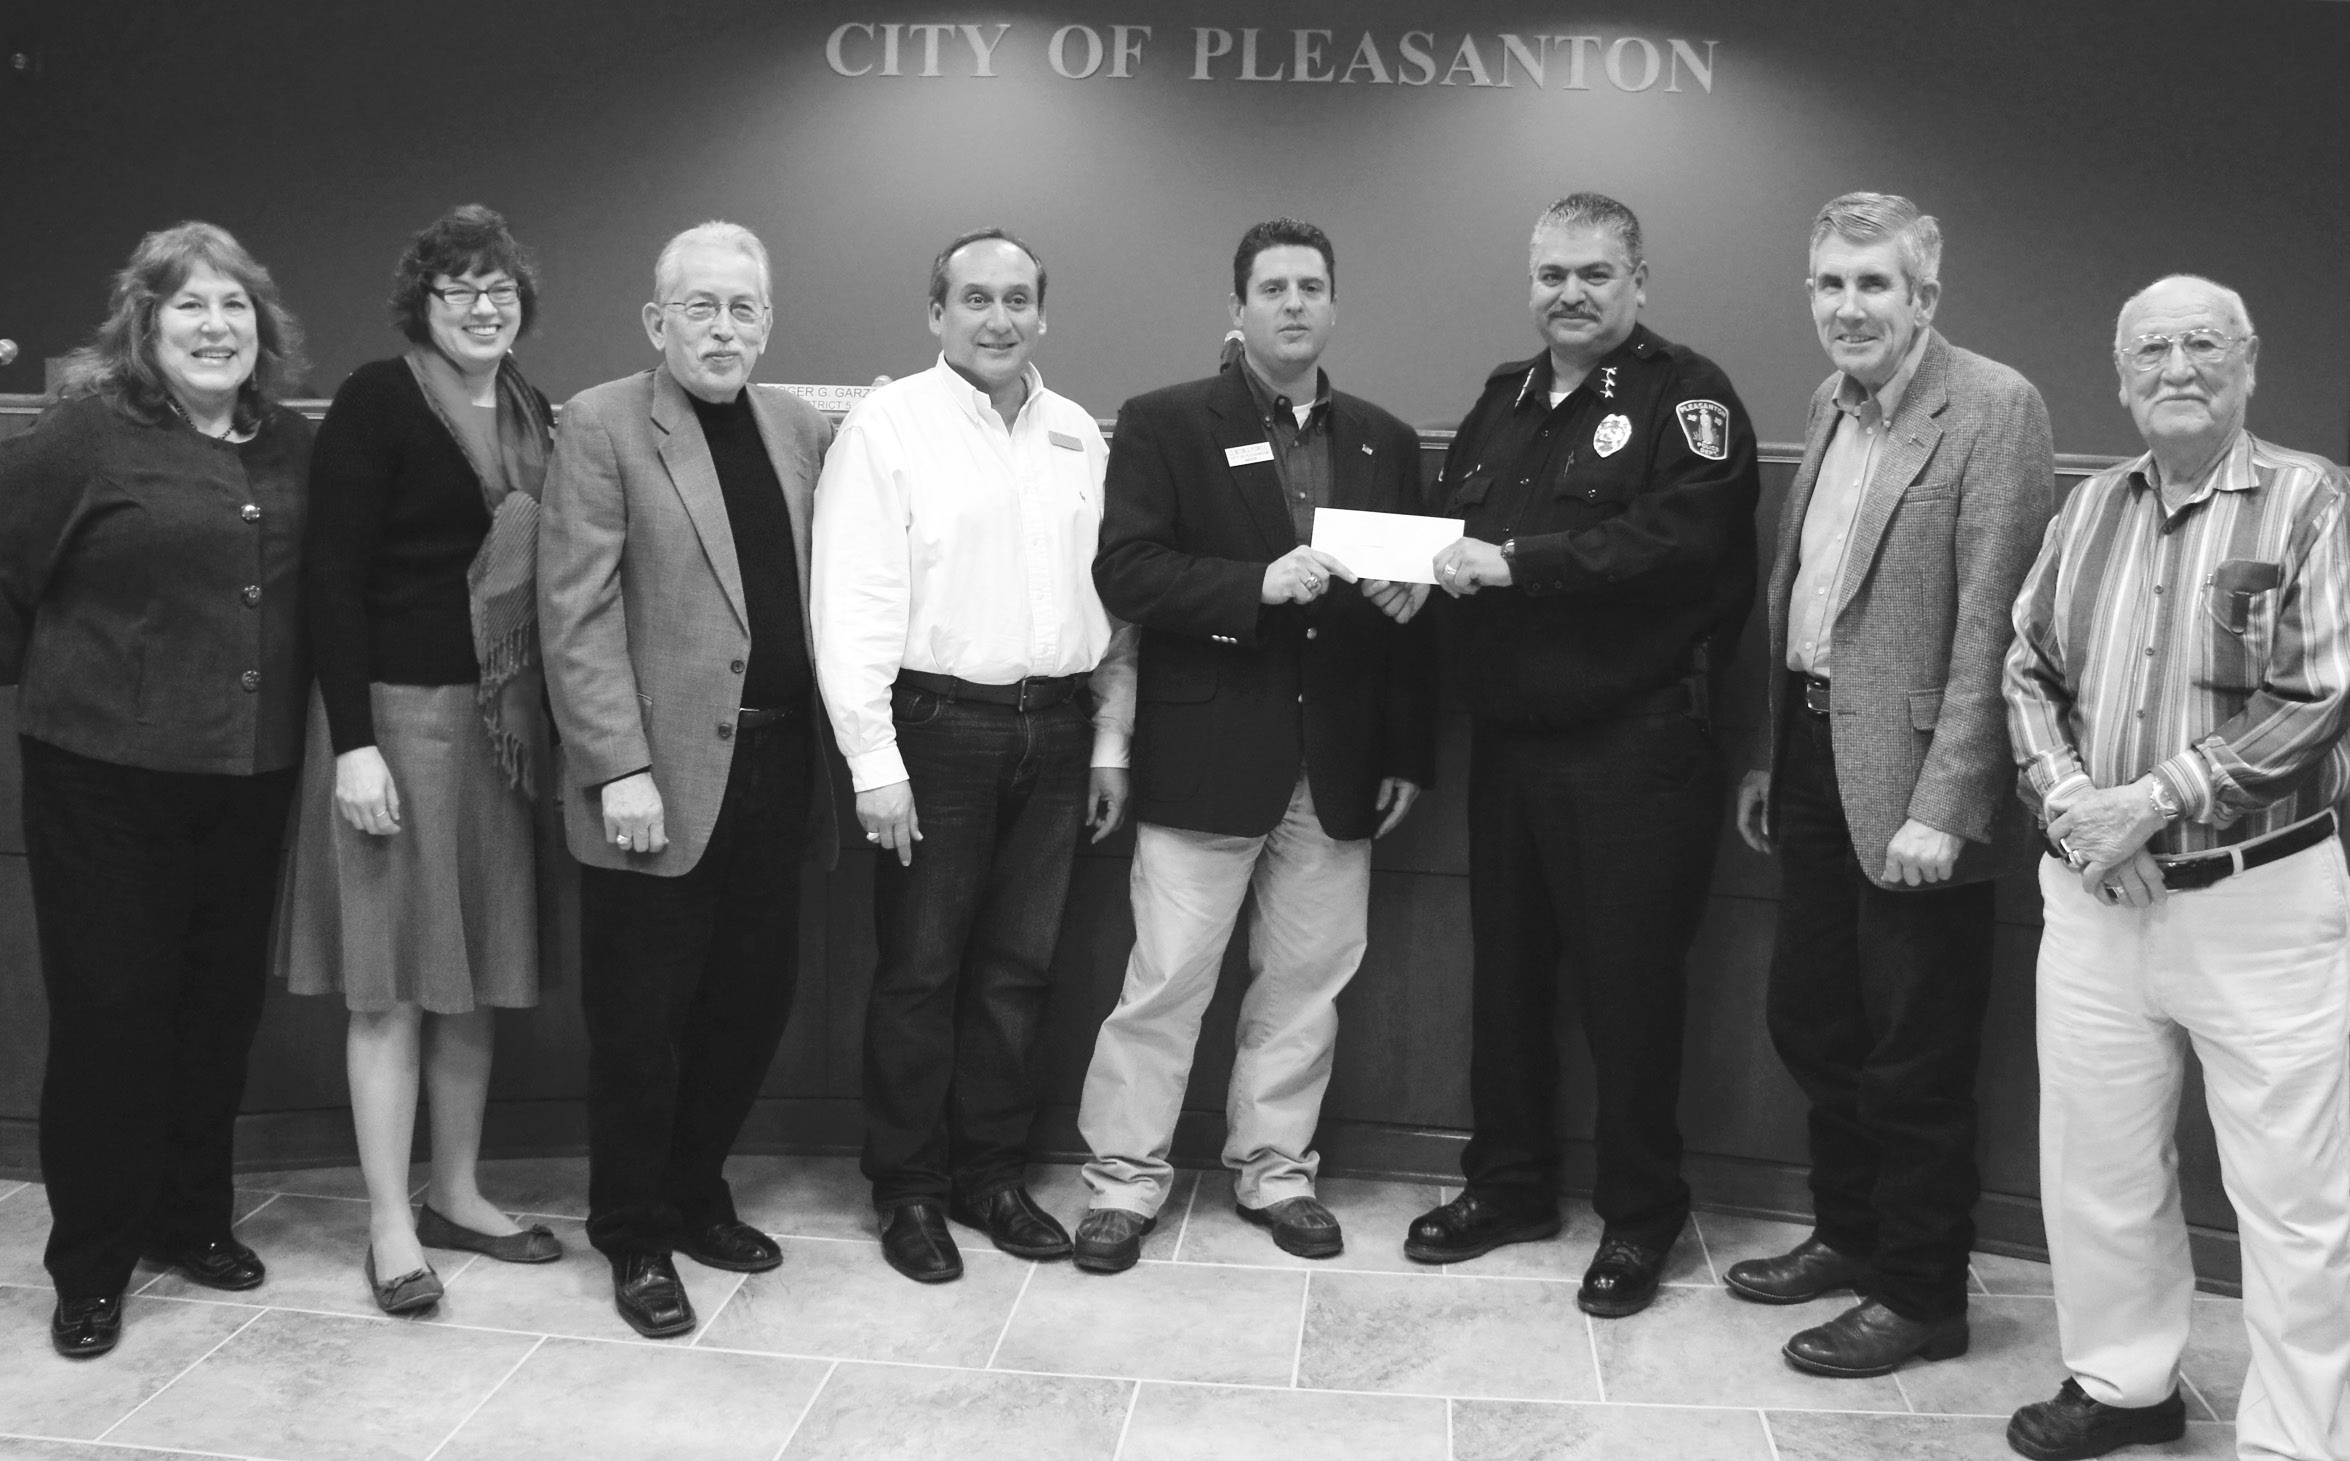 The City of Pleasanton received an $8,000 donation to continue the K-9 program. Left to right are: Jeanne B. Israel, Kathy Coronado, Roger G. Garza, J.R. Gallegos, Mayor Clinton J. Powell, Police Chief Ronald Sanchez, Jimmy Magel and Abraham Saenz.